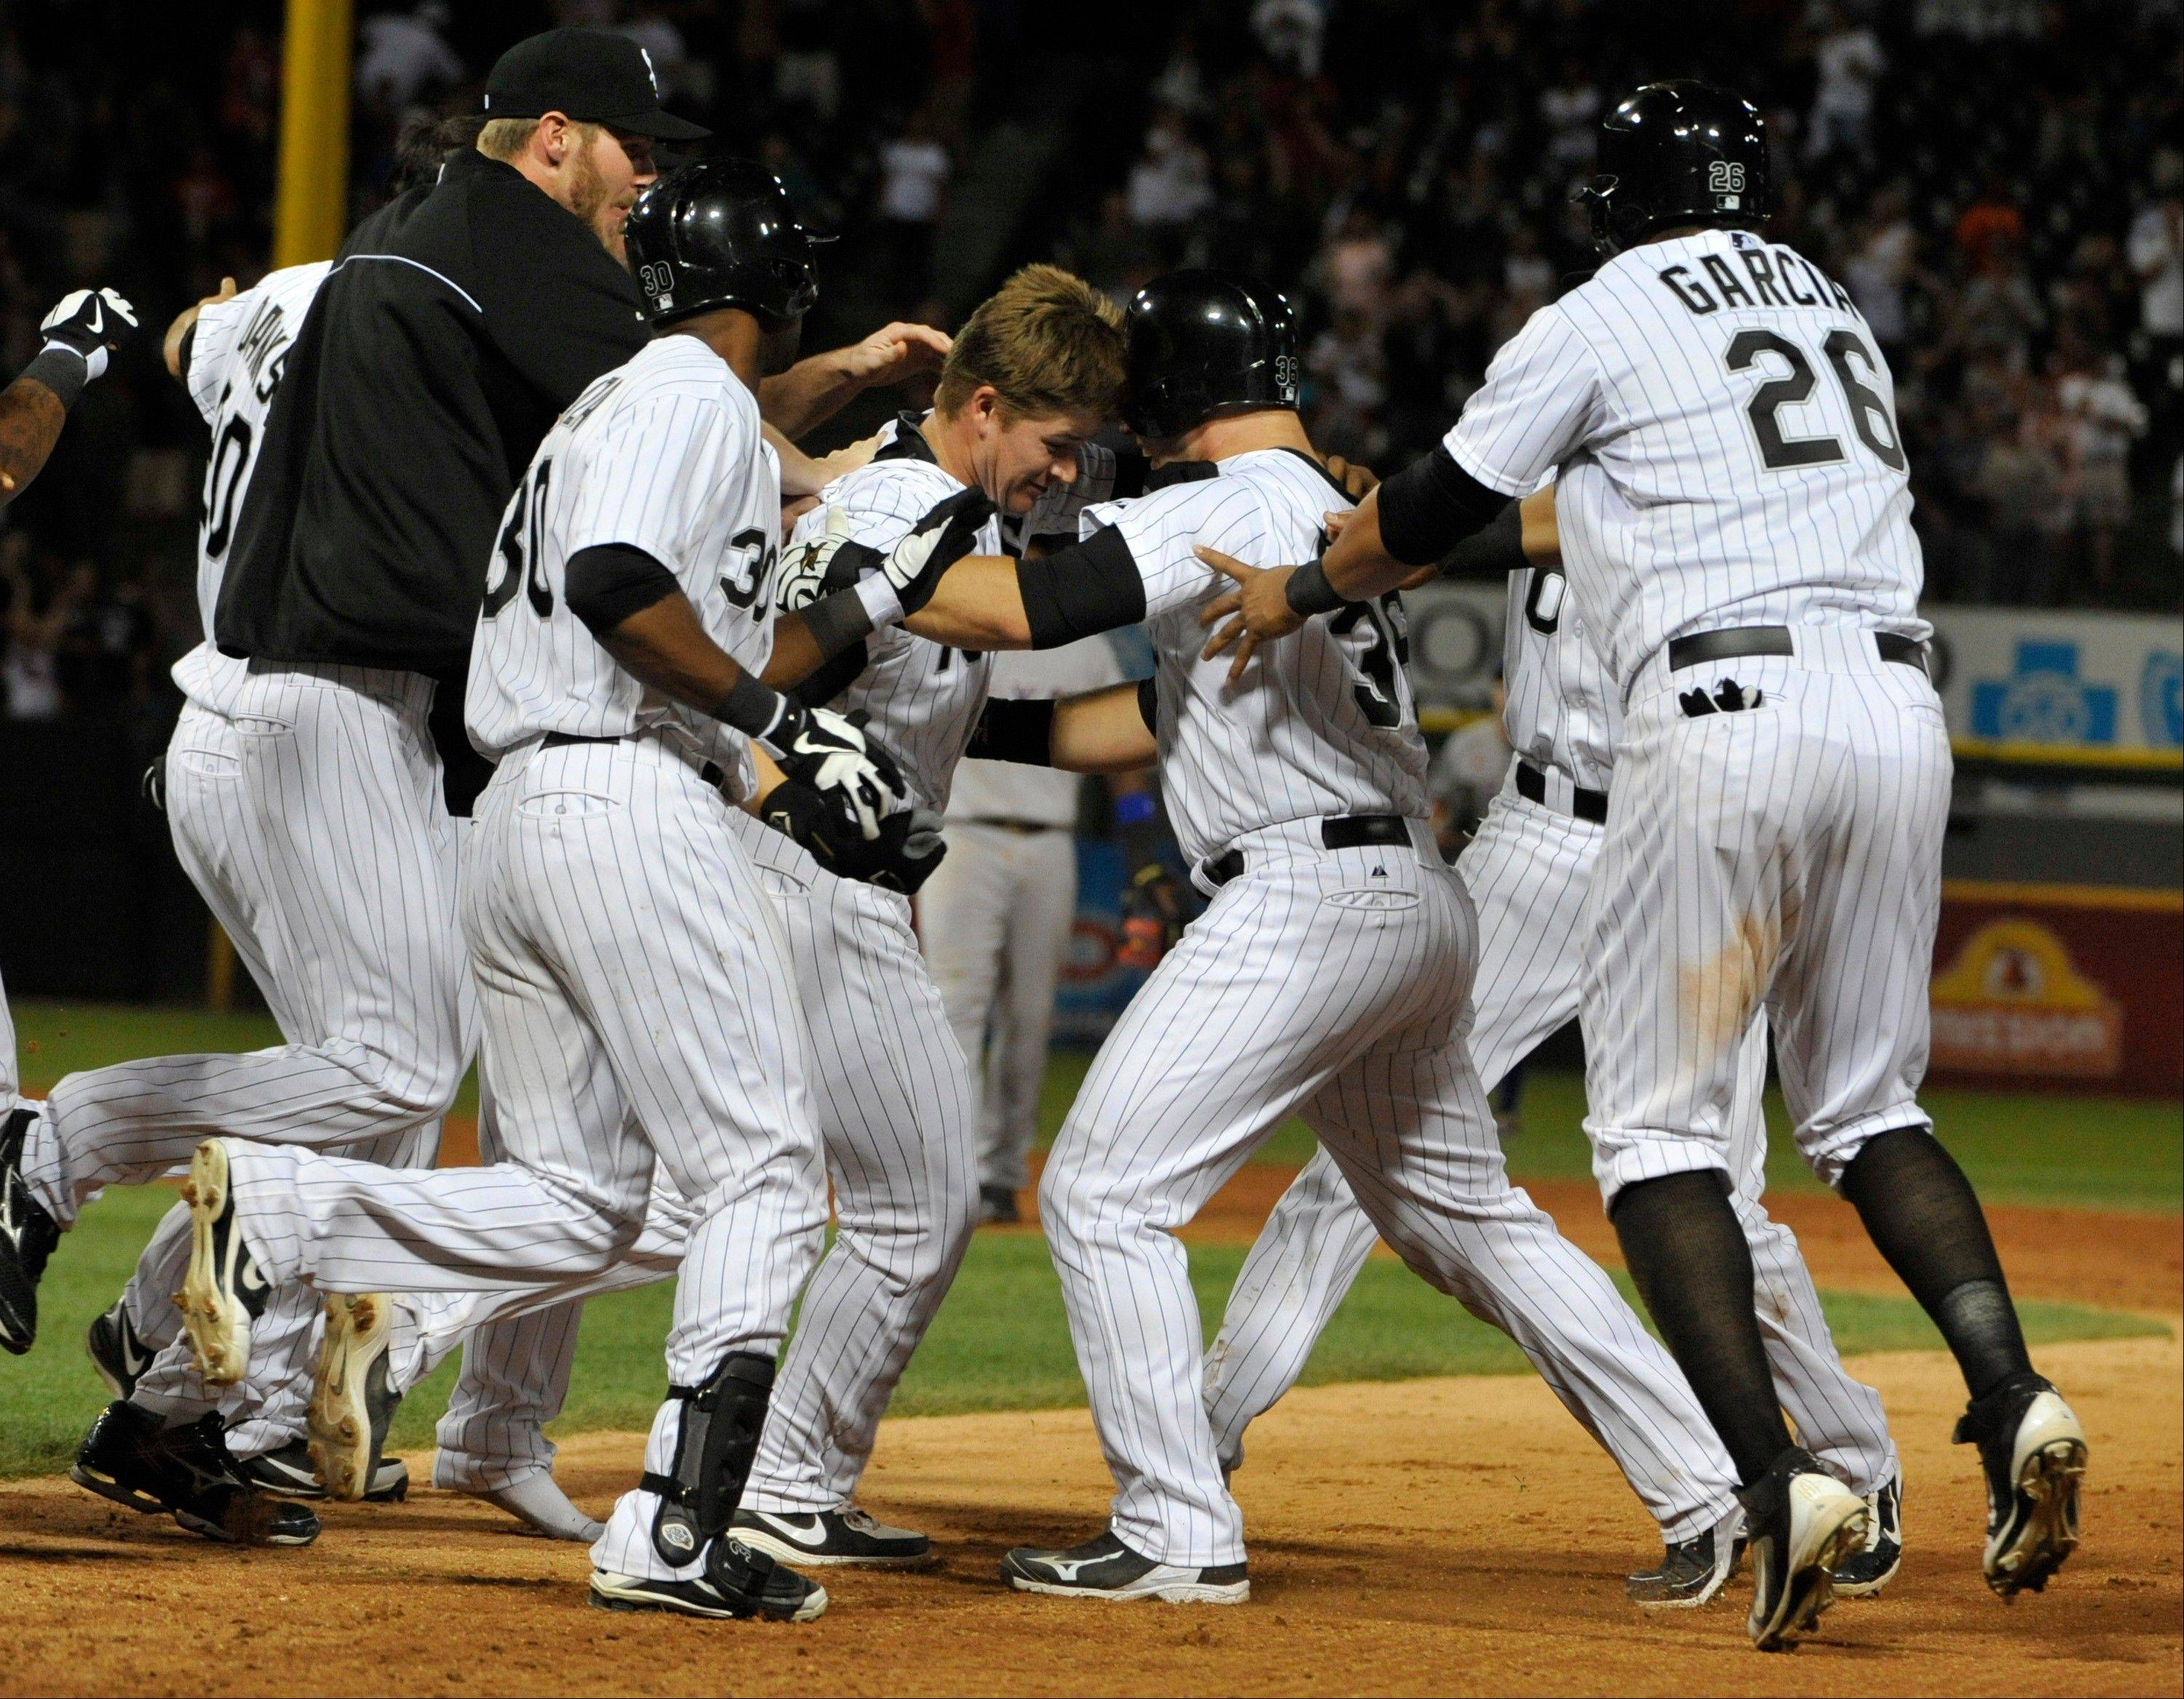 Rookie Josh Phegley, center, is mobbed by his teammates after hitting the game winning hit against the Texas Rangers Saturday at U.S. Cellular Field. The Sox defeated the Texas Rangers� 3-2.